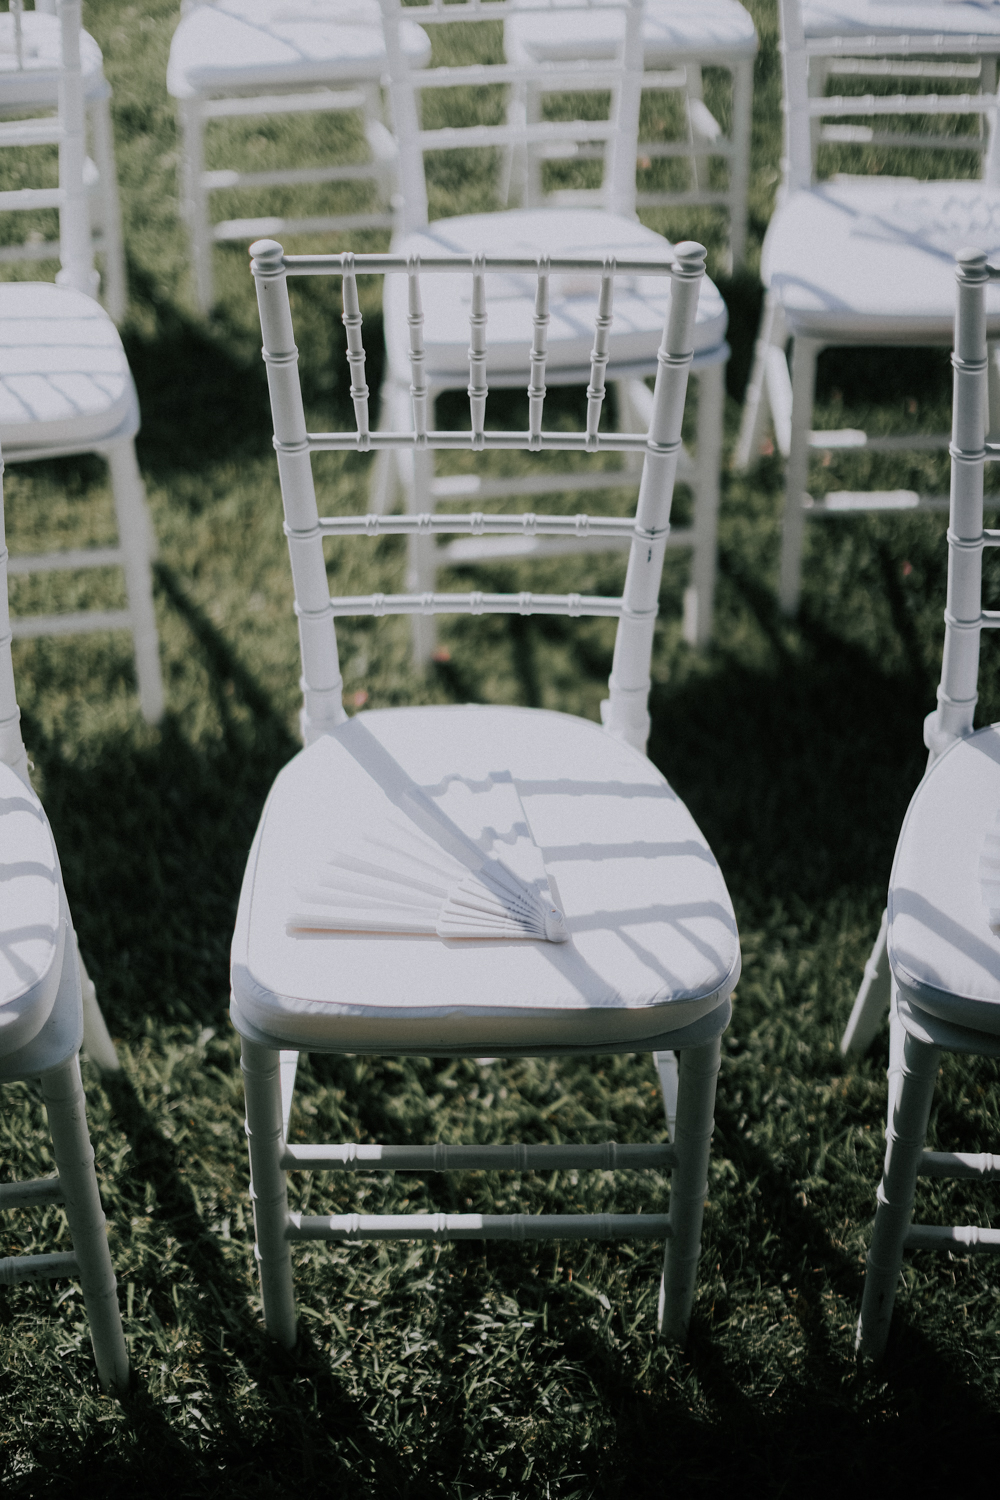 http://www.weddingamalfi.com/wp-content/uploads/Alessandro-and-Diego-wedding-chair-decoration.jpg